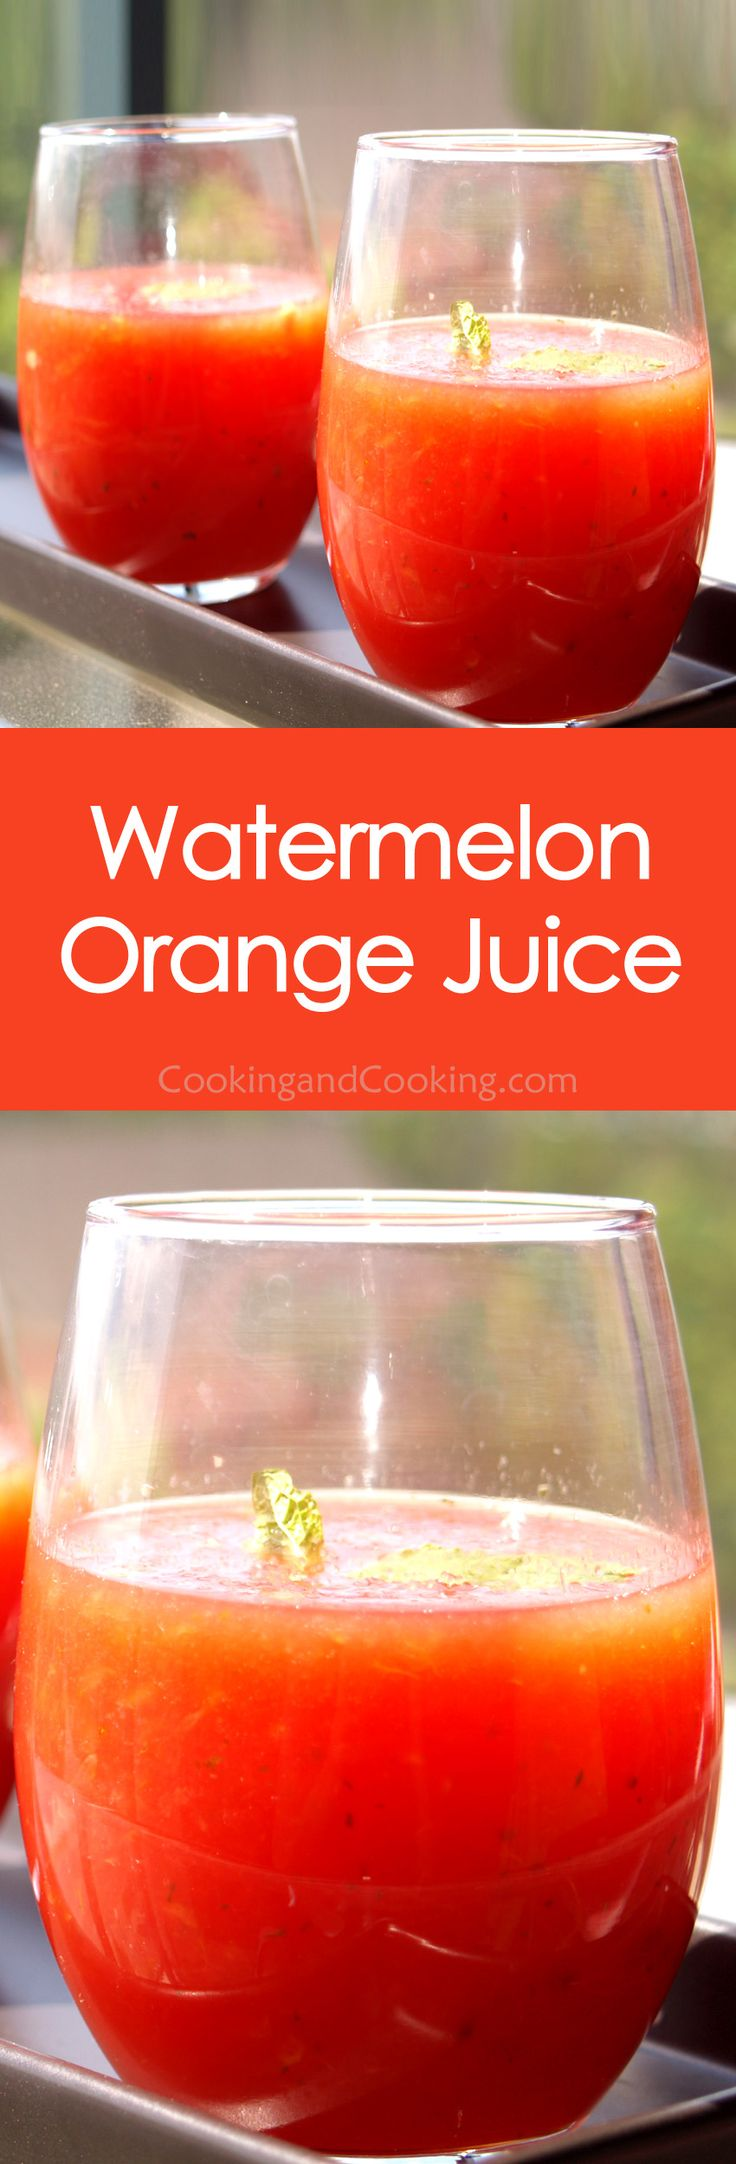 Watermelon Orange Juice Recipe More